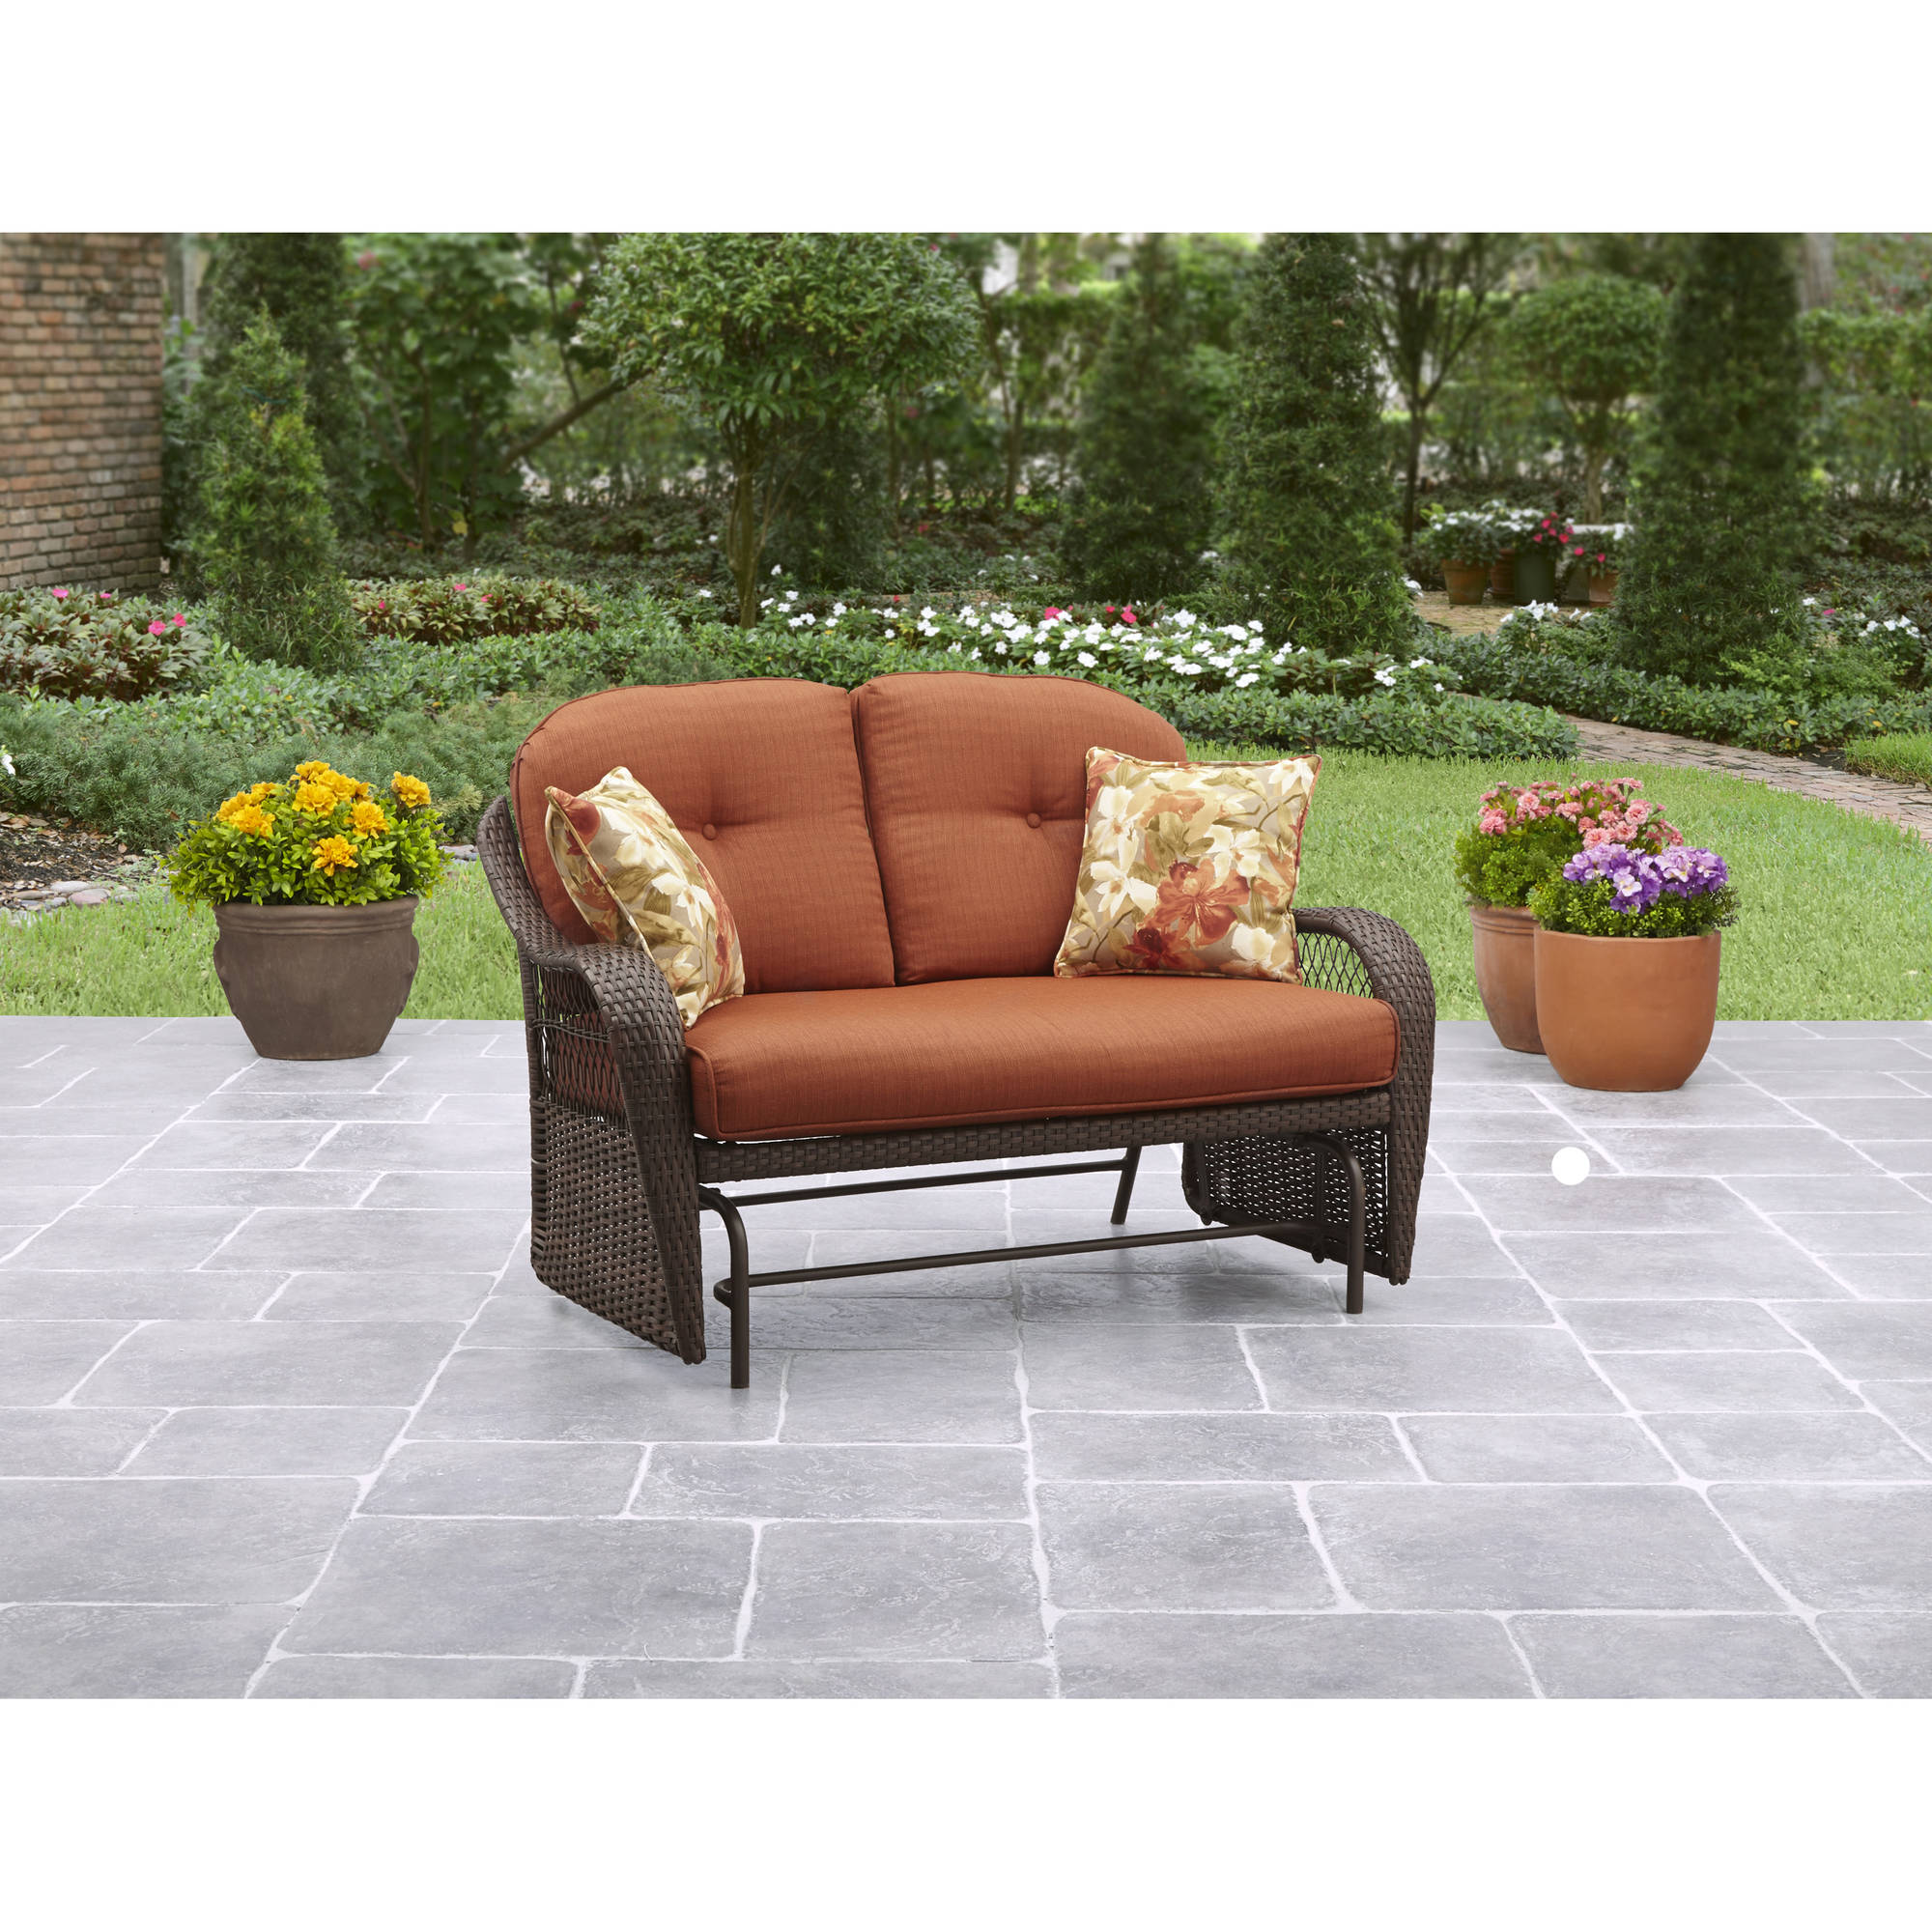 Better Homes and Gardens Azalea Ridge Glider Seats 2 Walmartcom